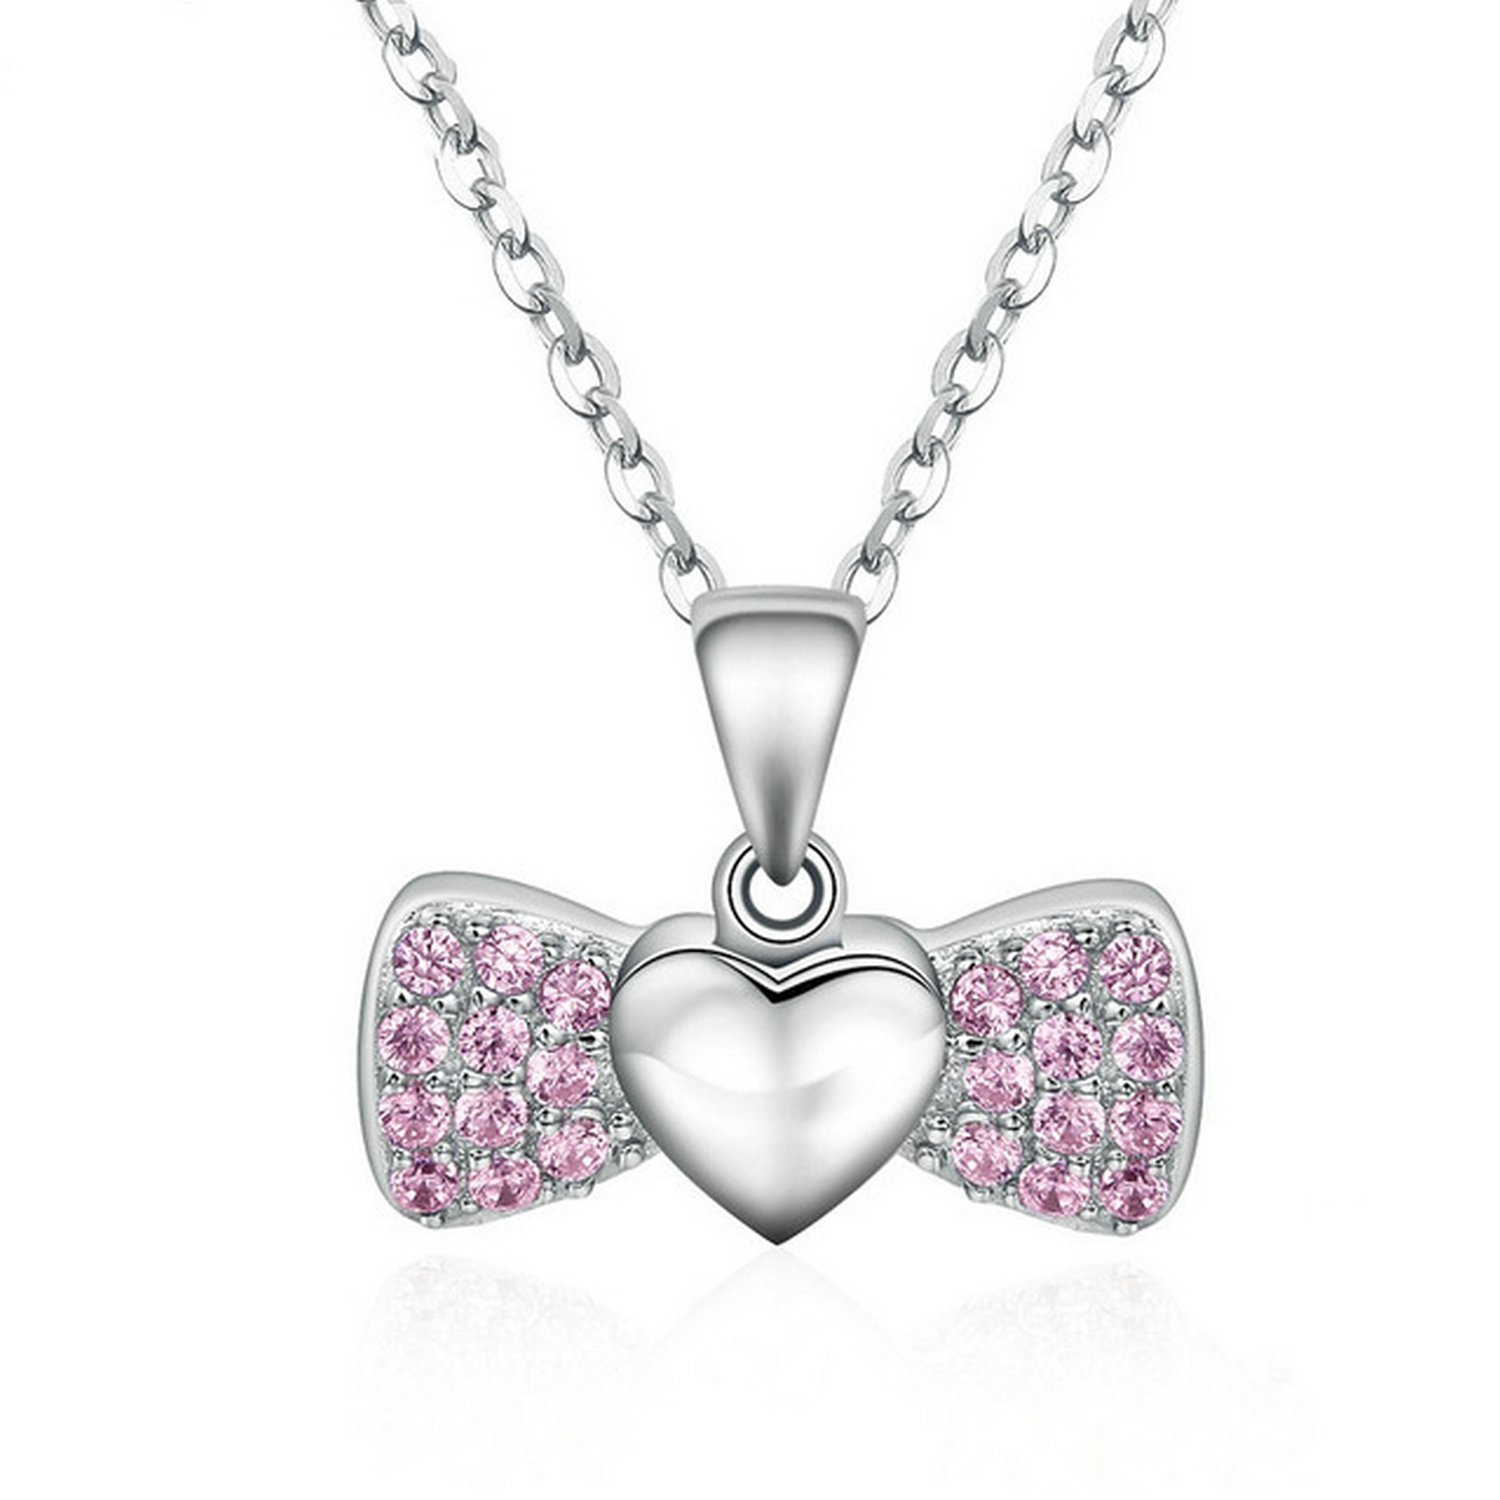 CS-DB Jewelry Silver Pink Bowknot Love Heart Chain Charm Pendants Necklaces